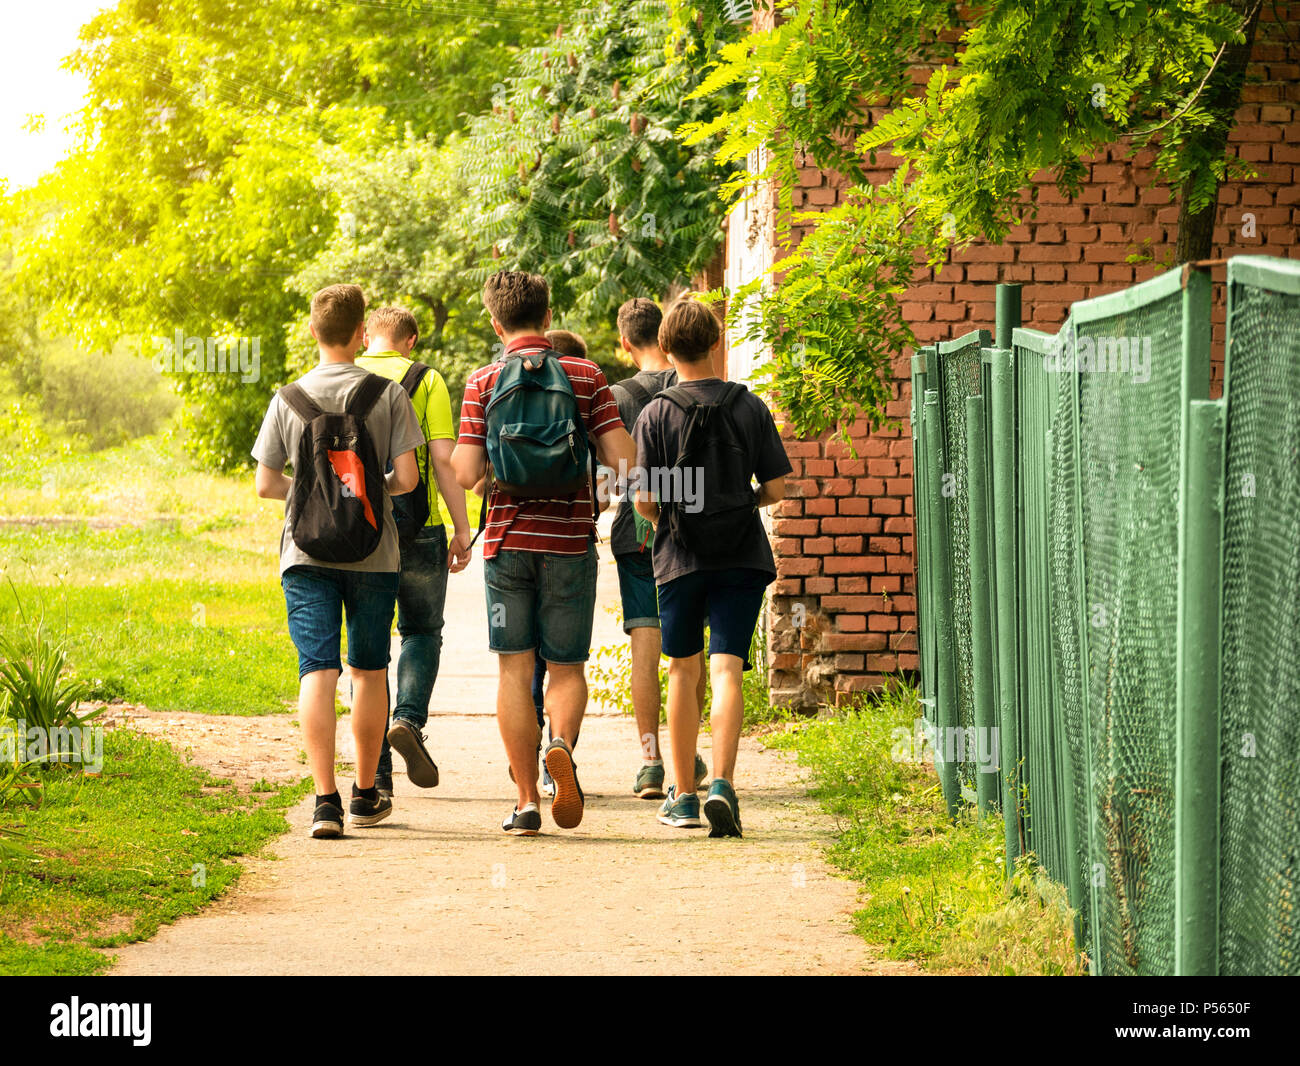 Backs of schoolchildren with colorful rucksacks moving to the school in the street - Stock Image